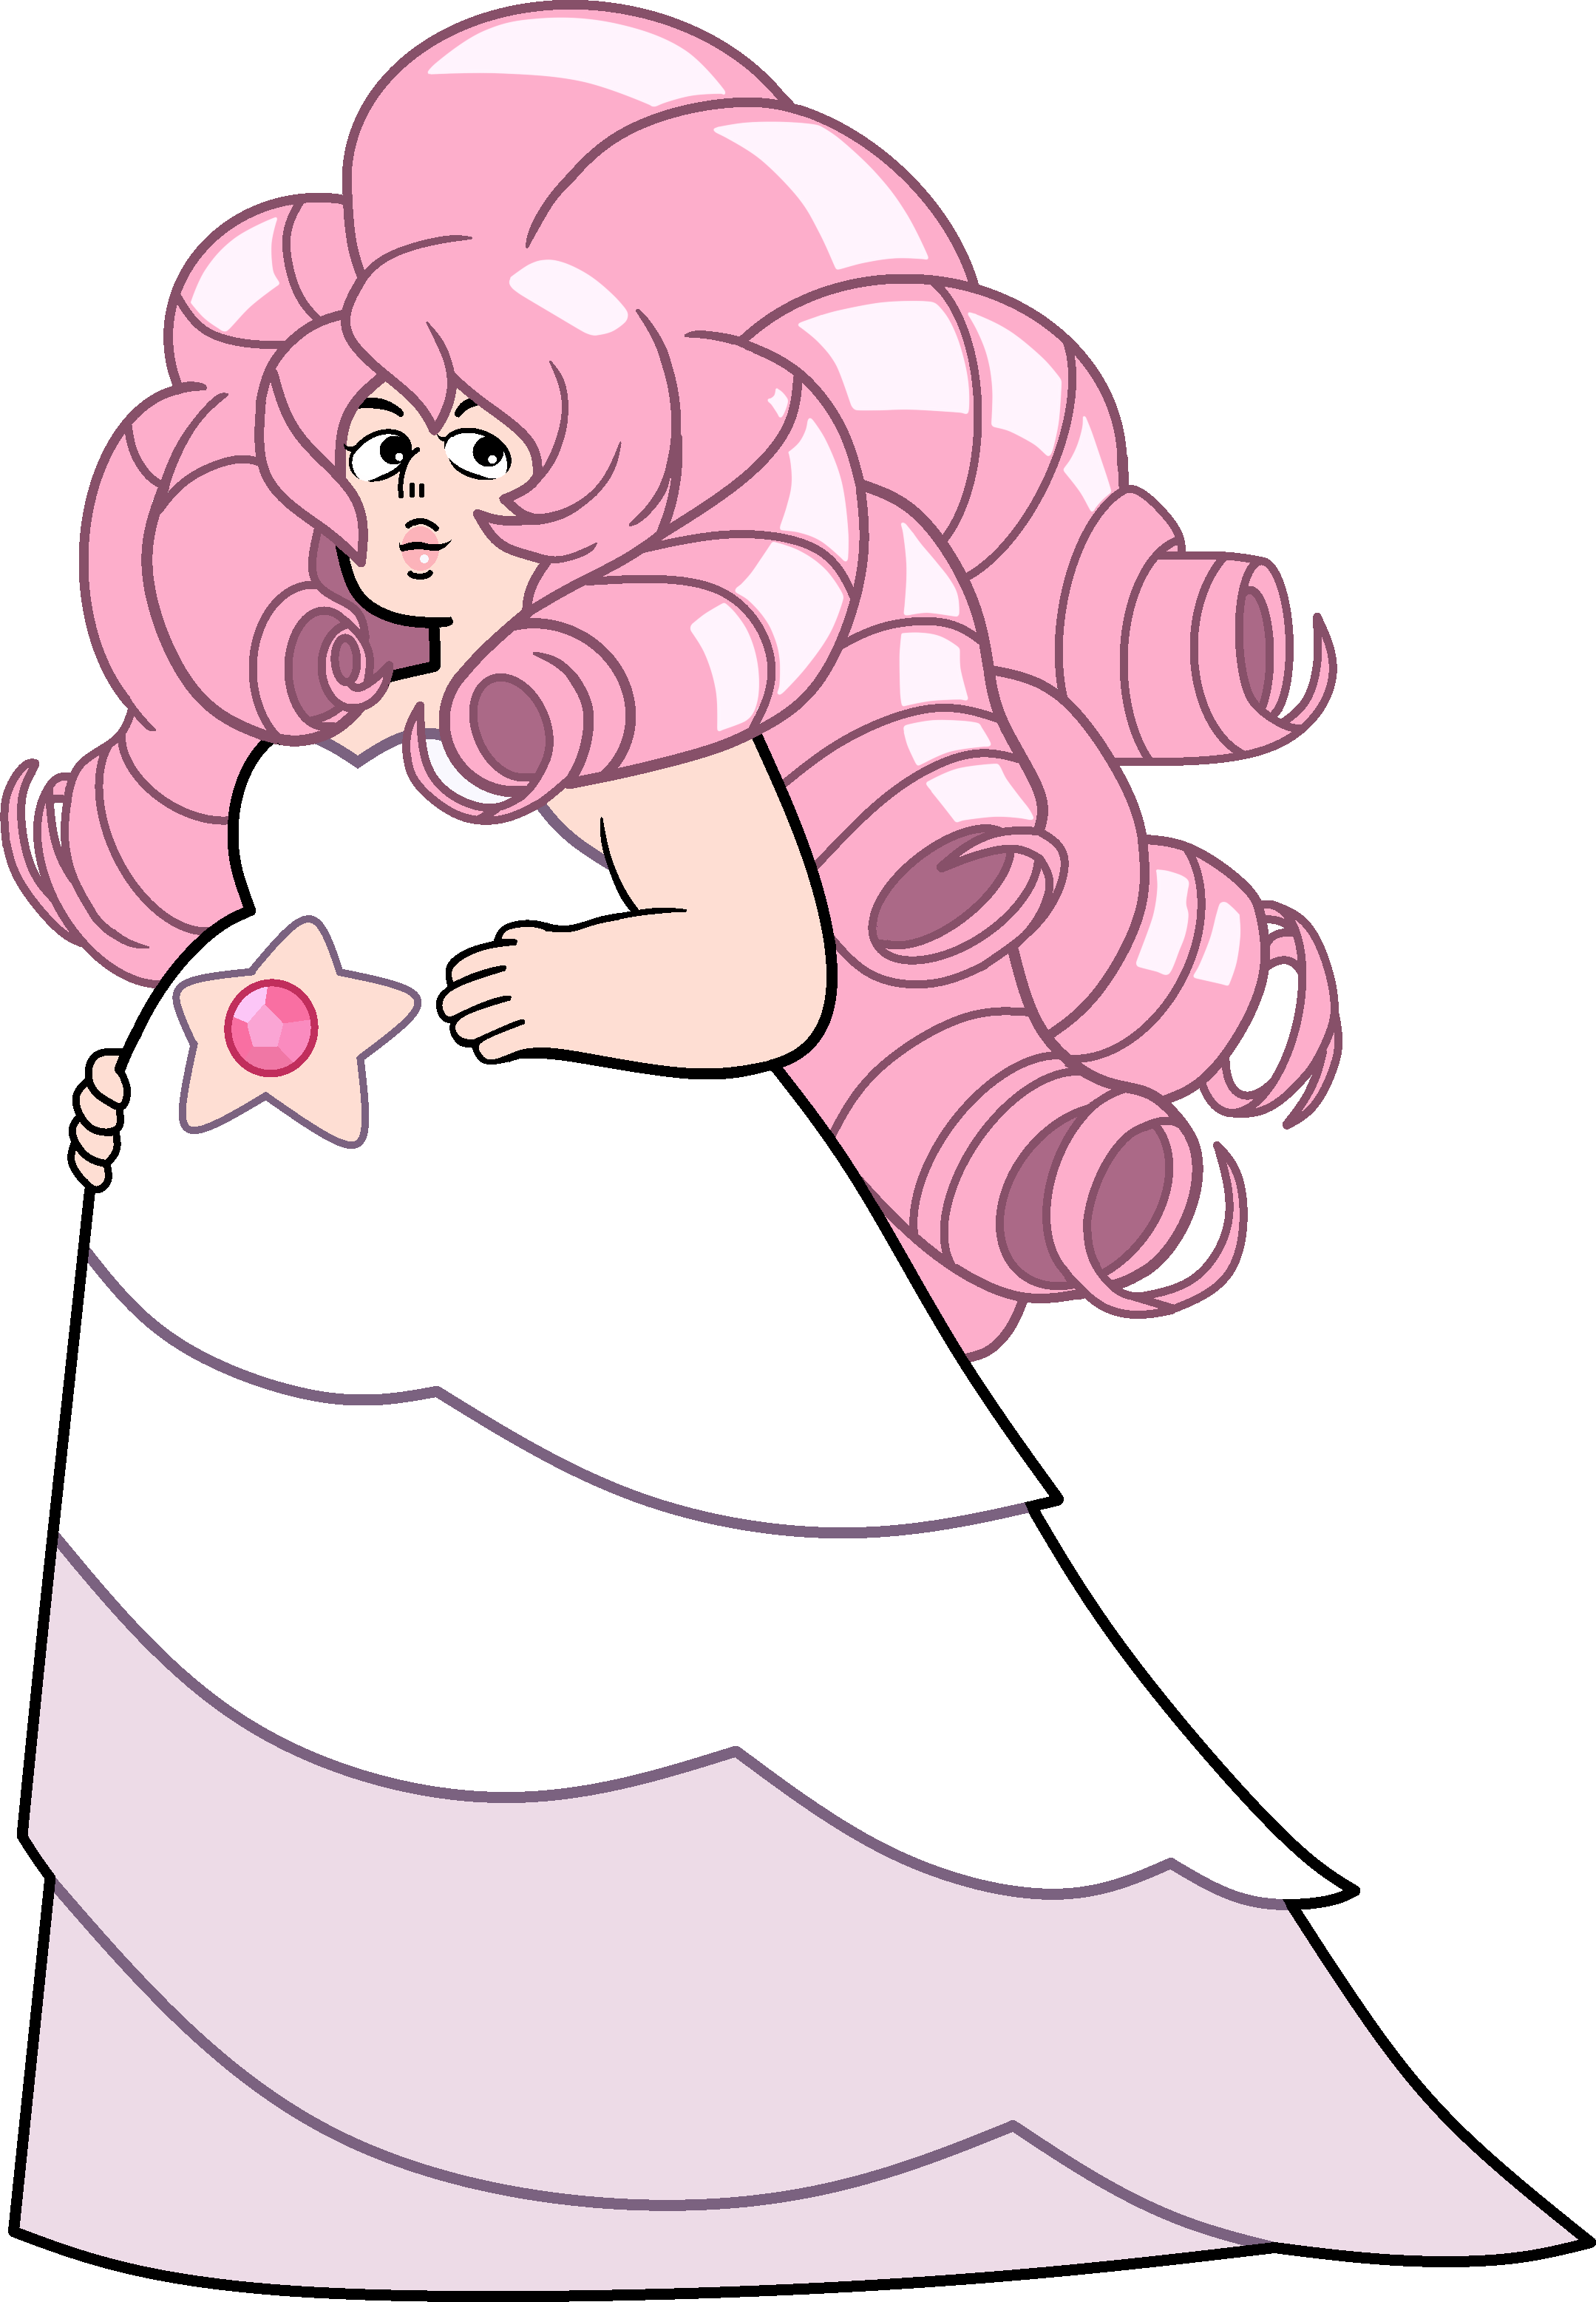 Image result for steven universe rose quartz pregnant